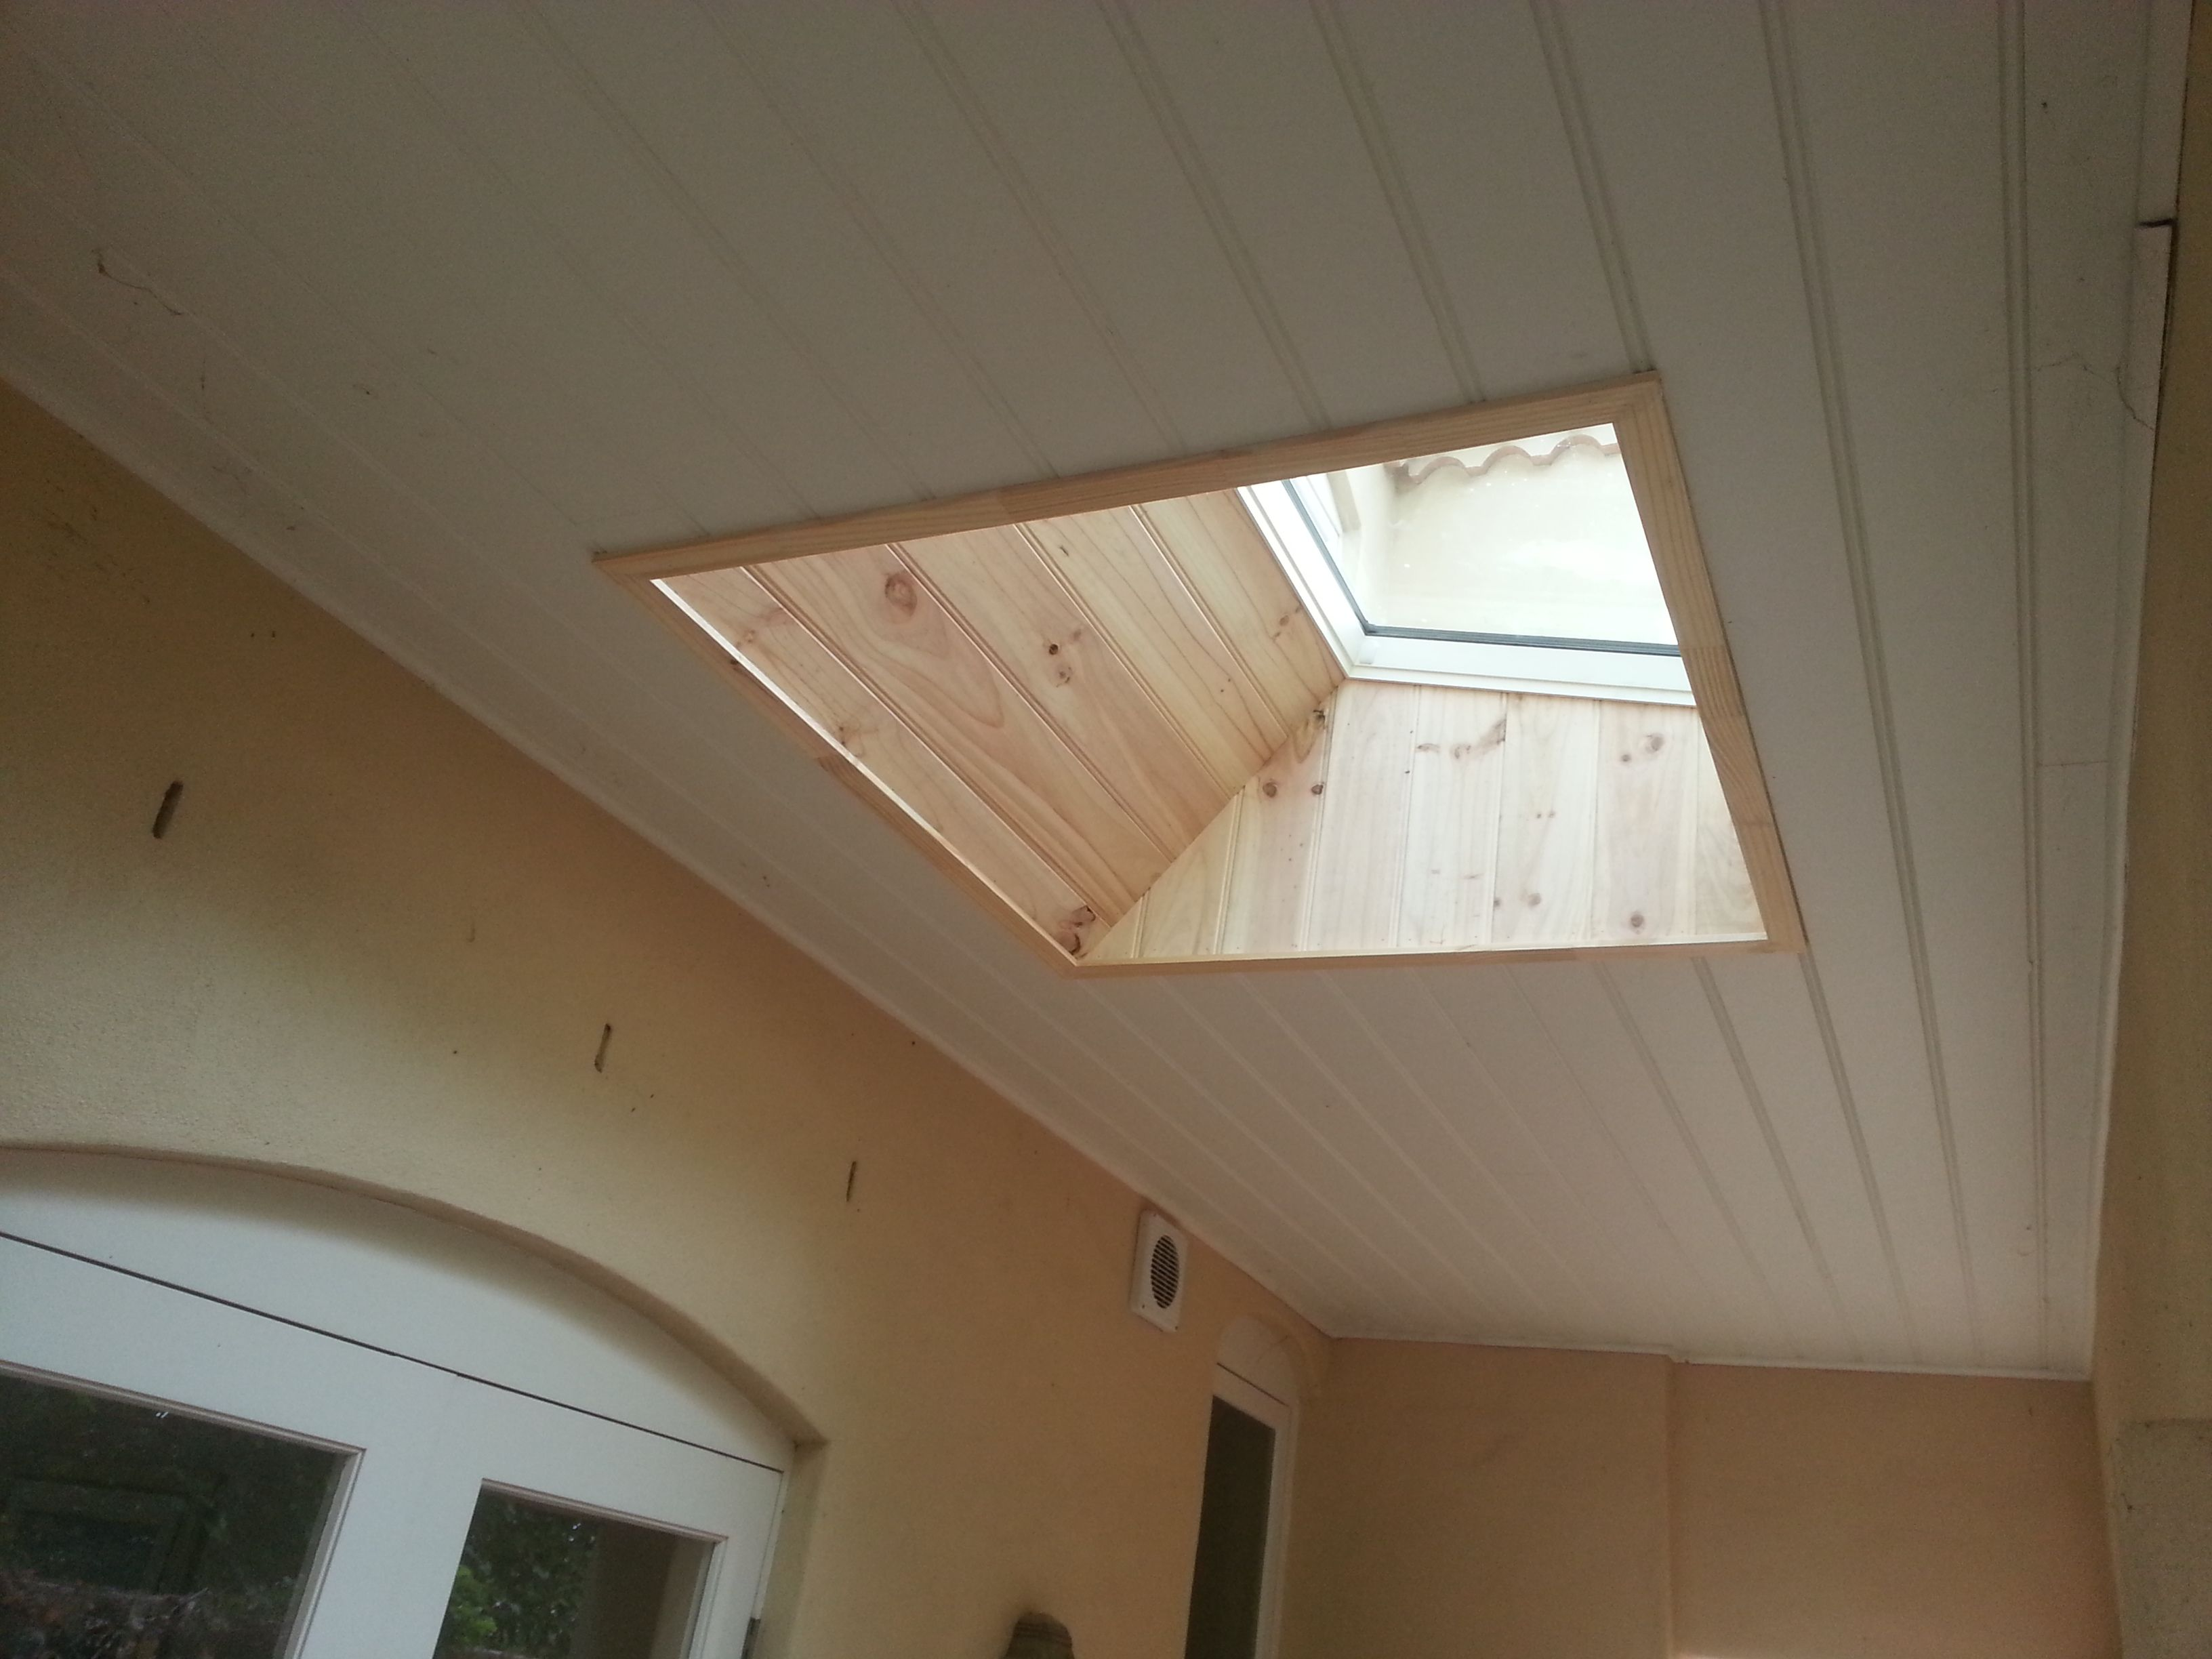 velux ggl 2 we installed velux fixed s skylights into the. Black Bedroom Furniture Sets. Home Design Ideas